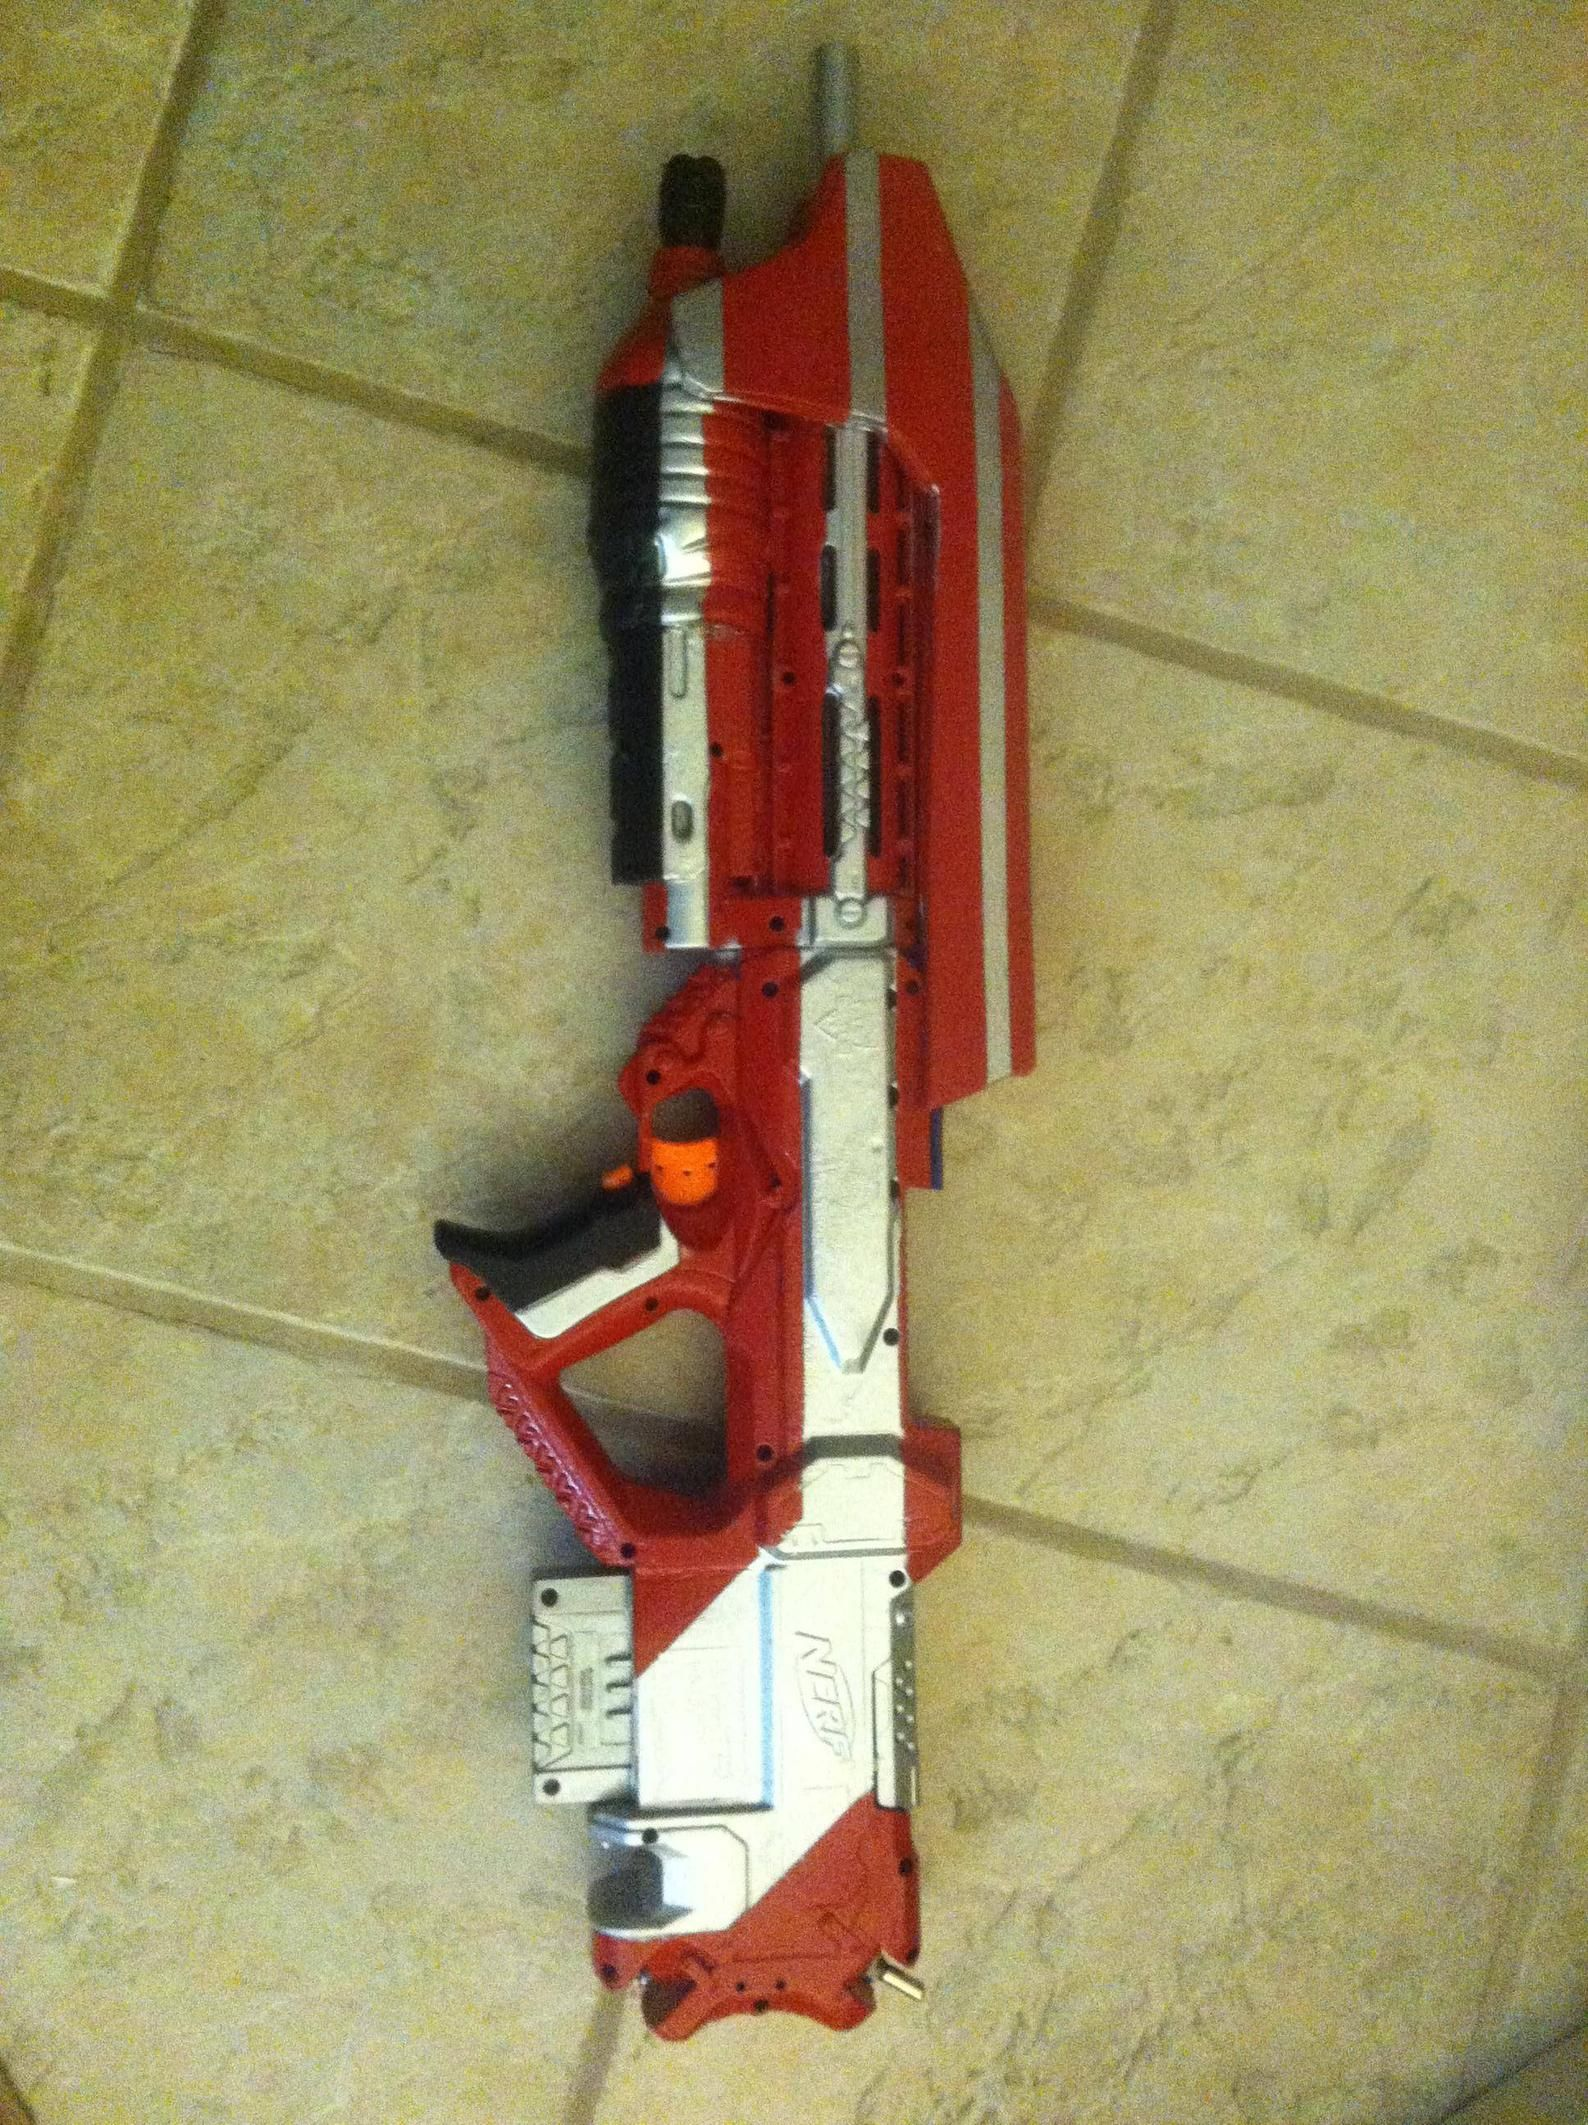 Halo AR nerf replica- I want this so badly!